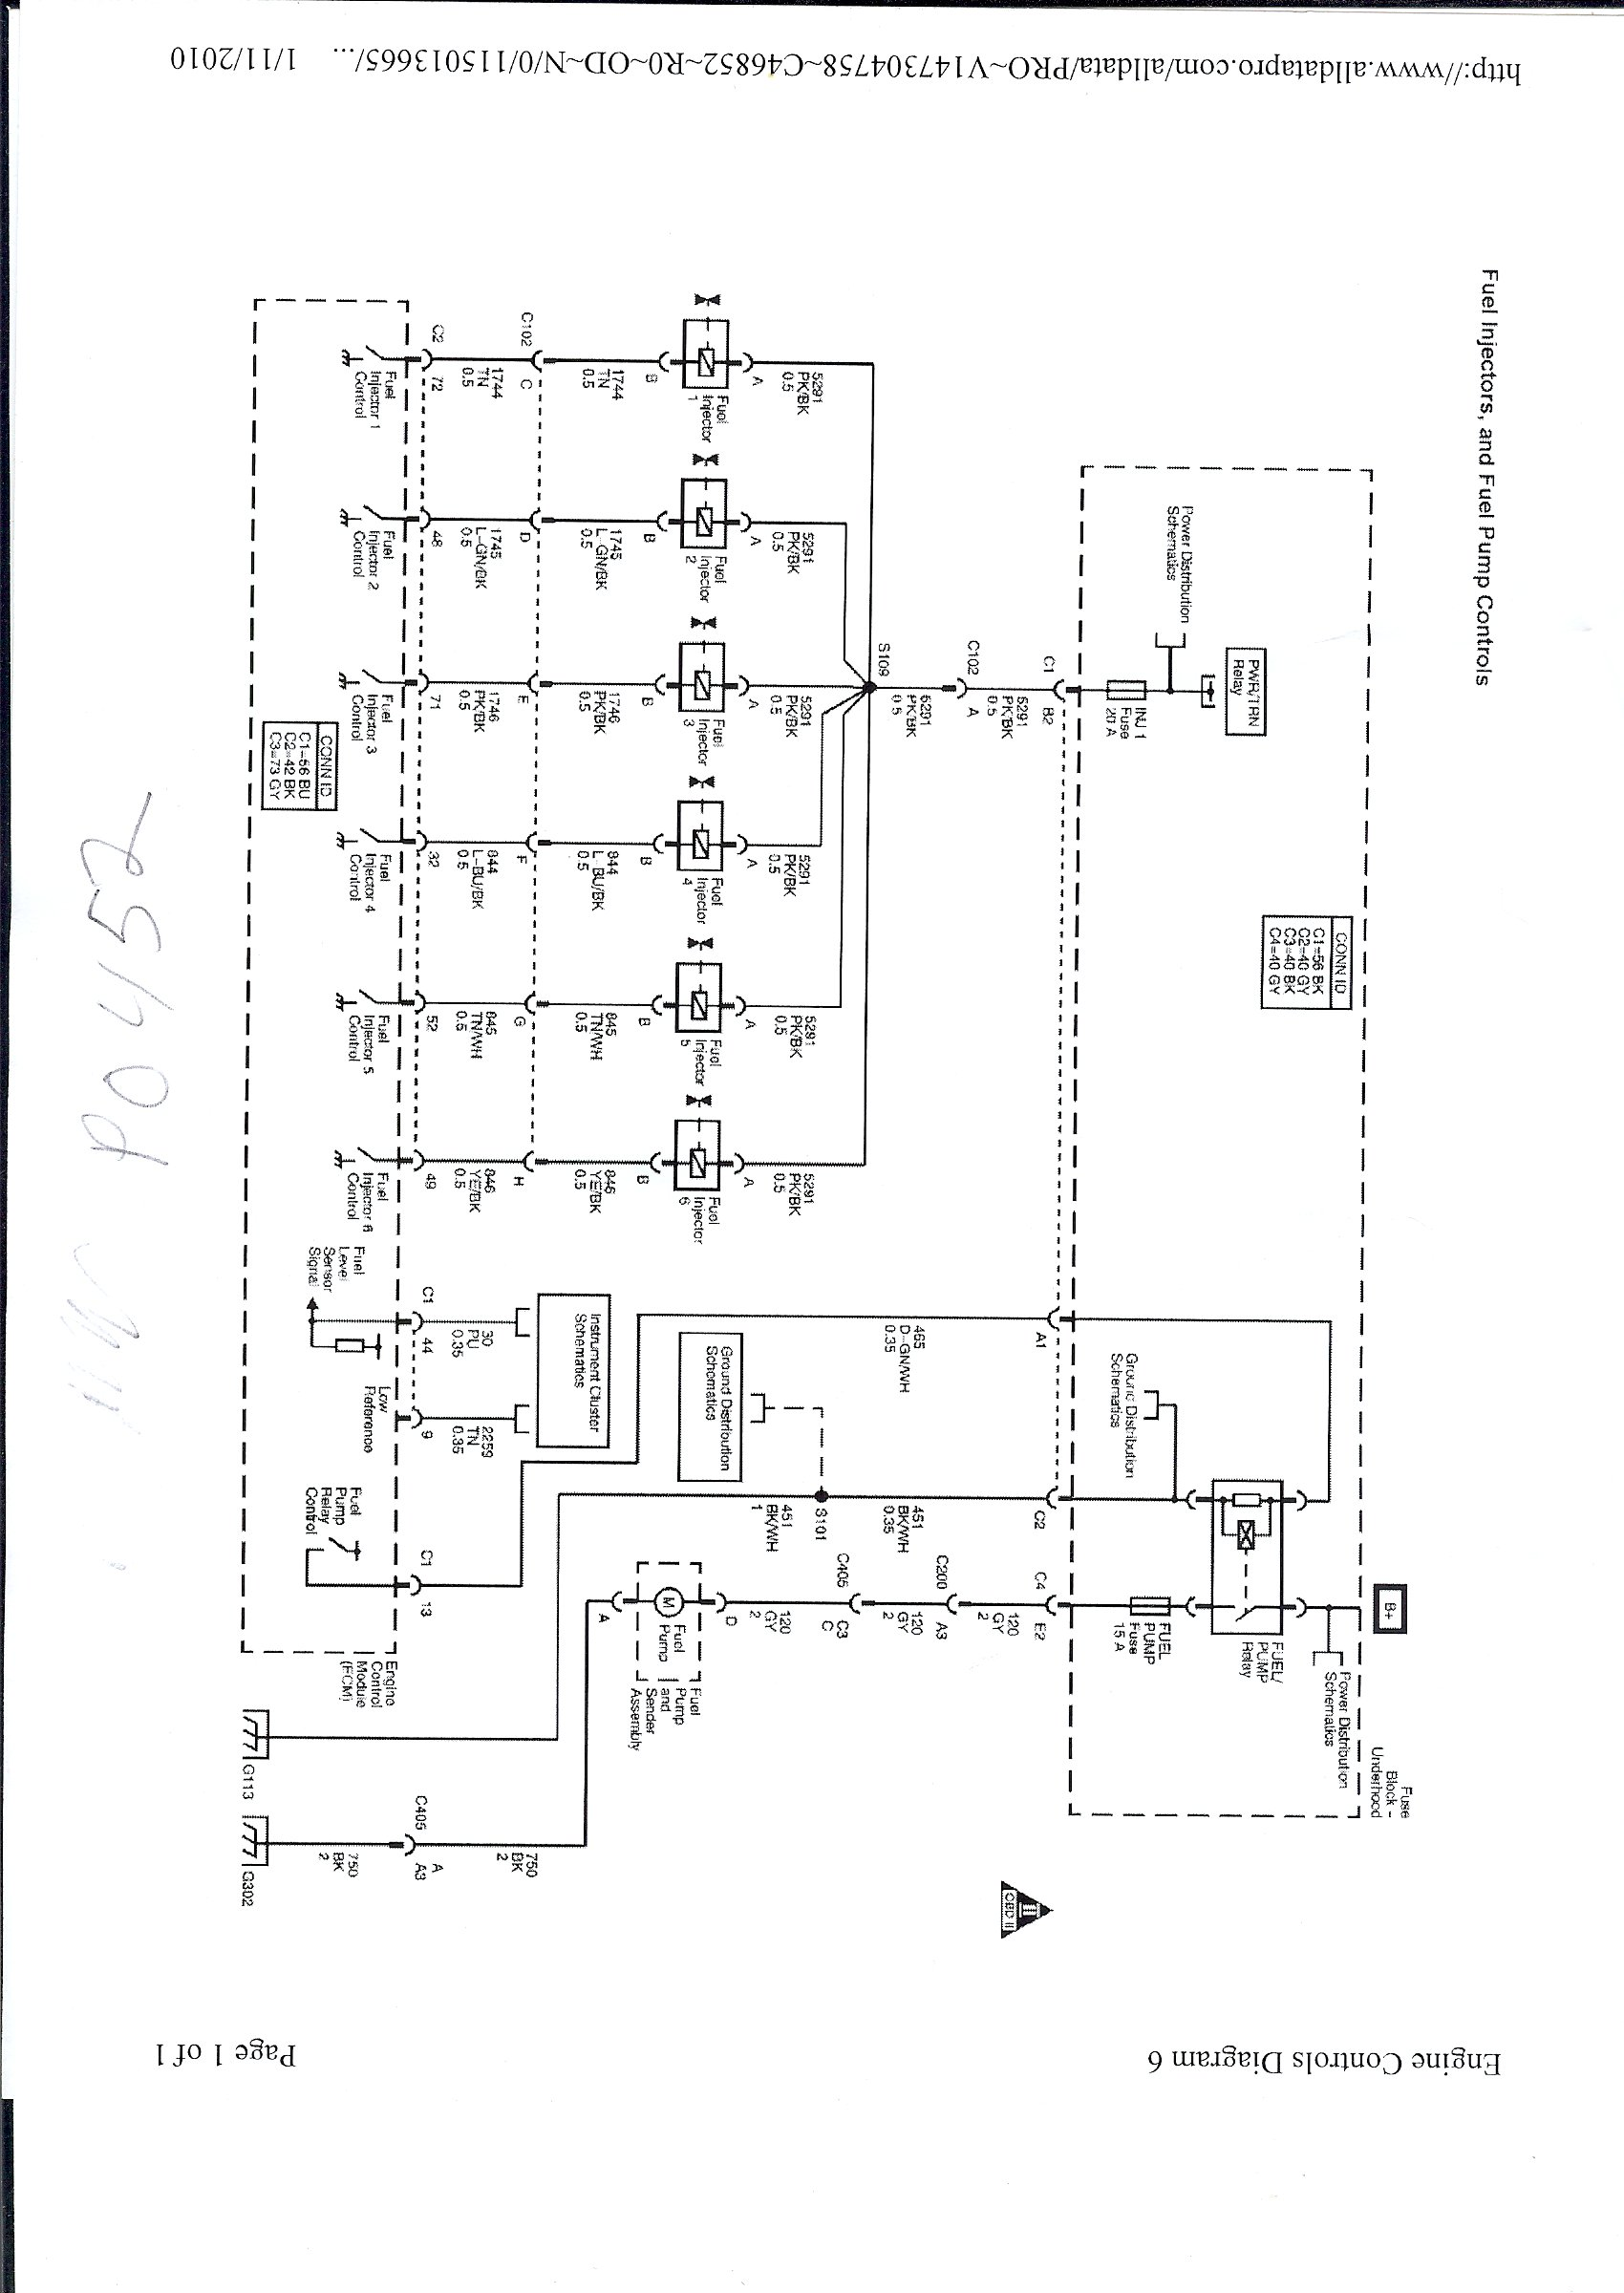 2010 01 13_020441_wiring_diagram 2006 chevy impala fuel pump went out replaced pump still will 2004 chevy malibu fuel pump wiring diagram at nearapp.co